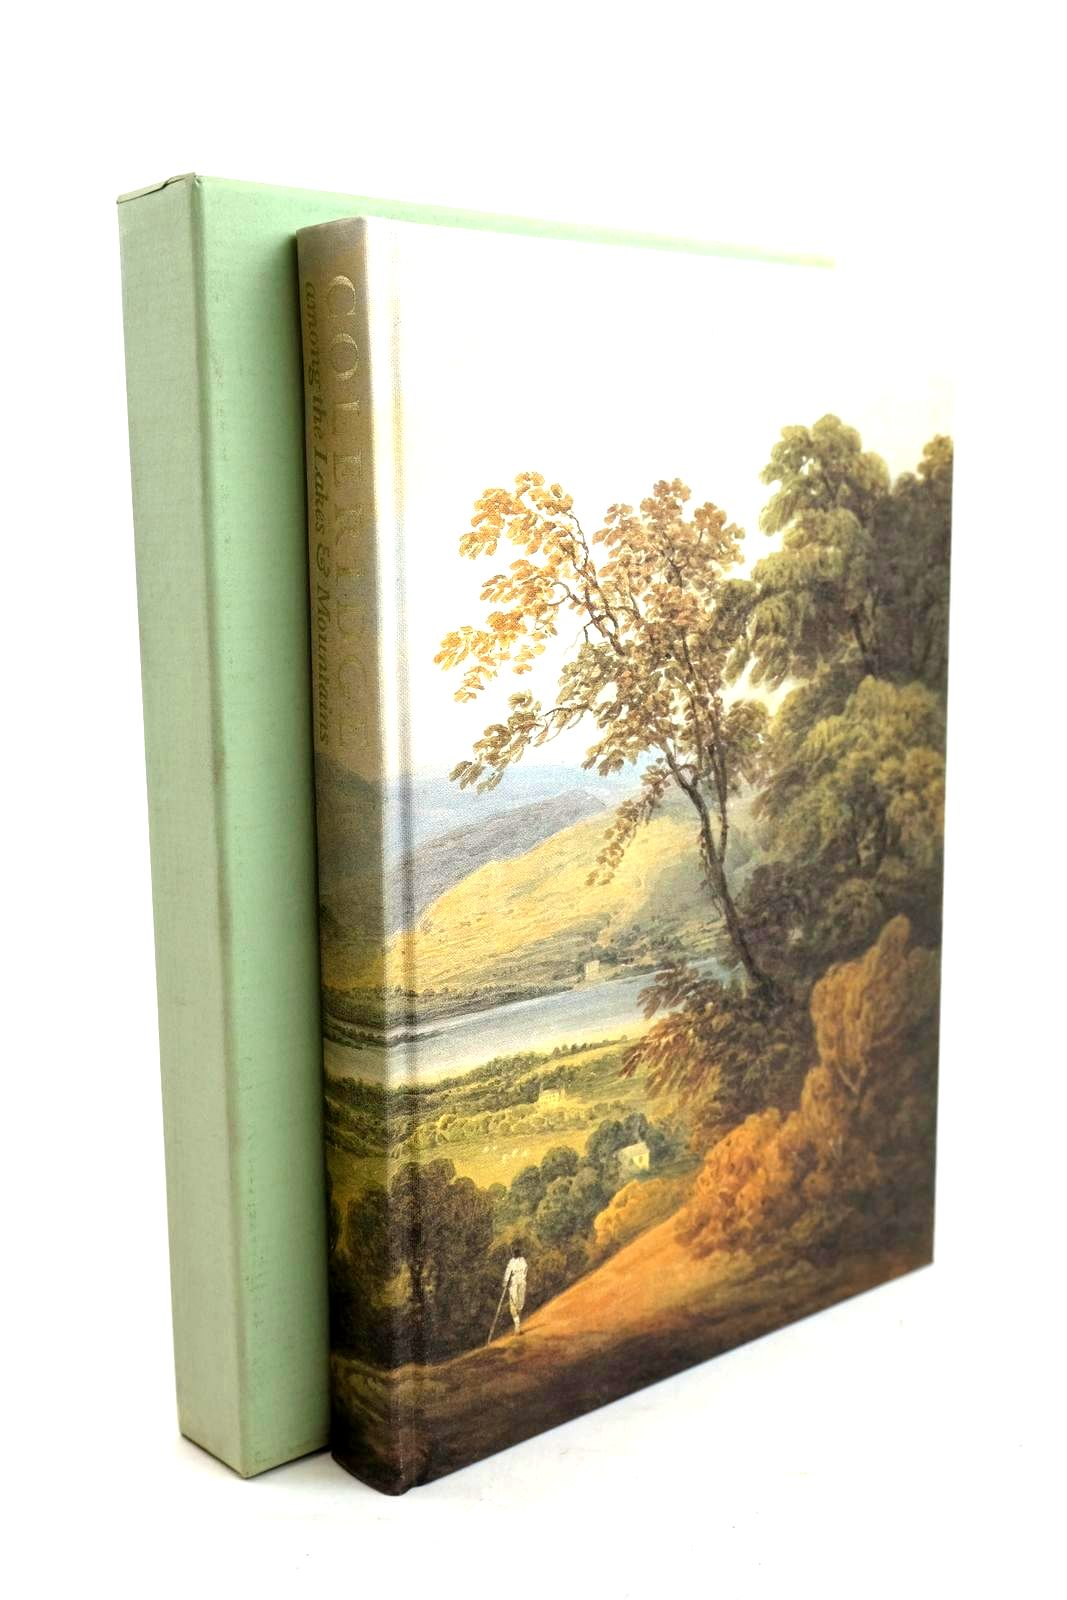 Photo of COLERIDGE AMONG THE LAKES & MOUNTAINS written by Coleridge, Samuel Taylor Hudson, Roger published by Folio Society (STOCK CODE: 1320247)  for sale by Stella & Rose's Books